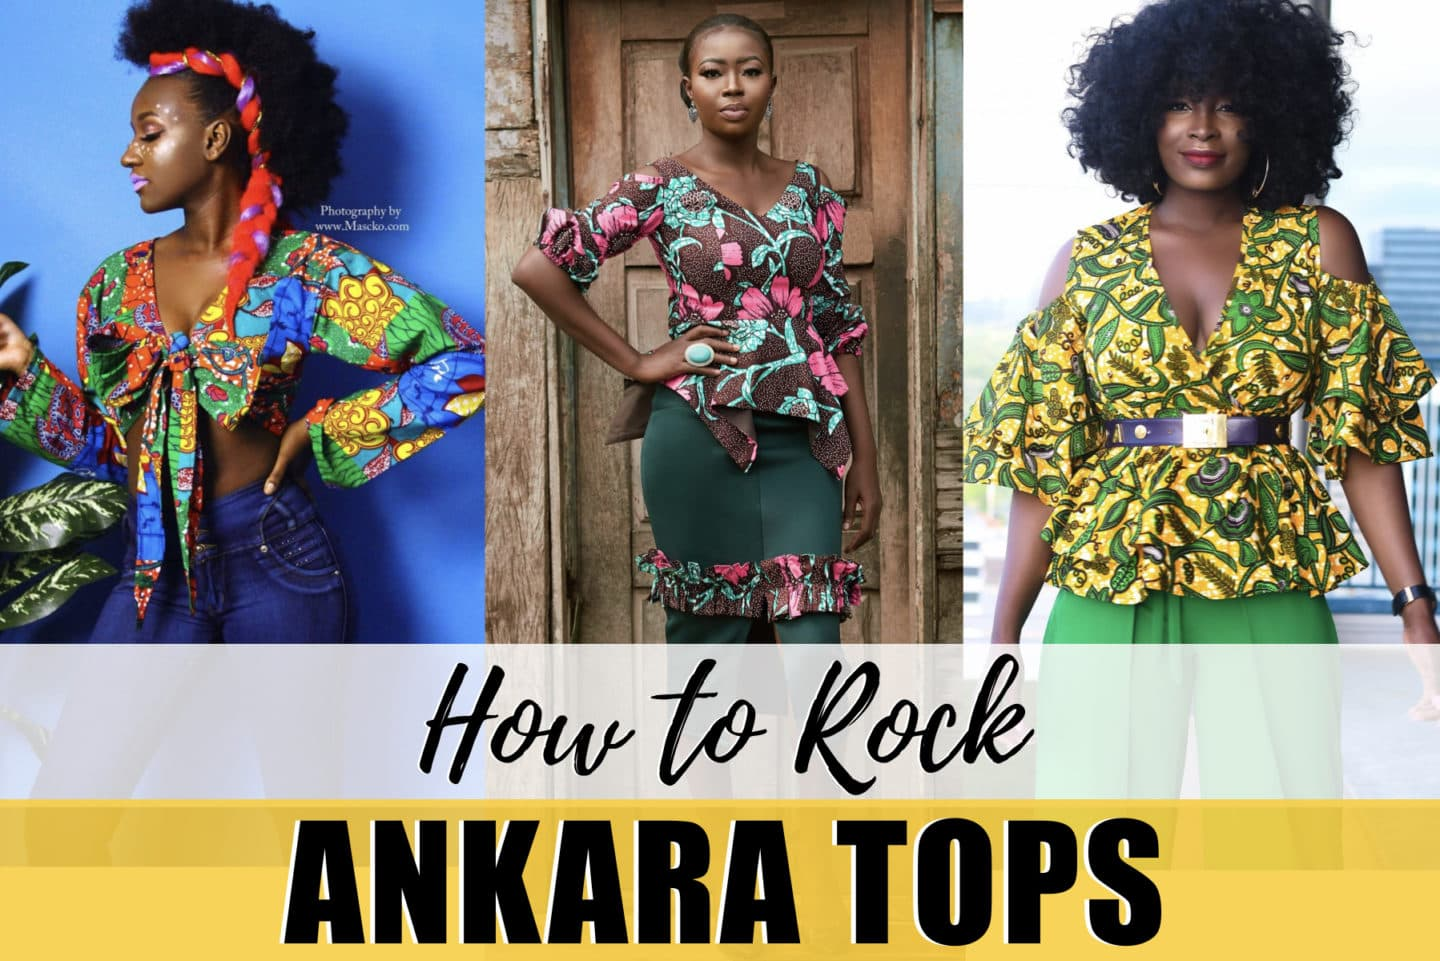 #ankarastyles #ankarafashion The ultimate roundup of the most-wanted African print tops in 2019 plus tips on how to score these ankara tops like peplum tops, crop tops, and more for less to help you get the most out of African print clothes.